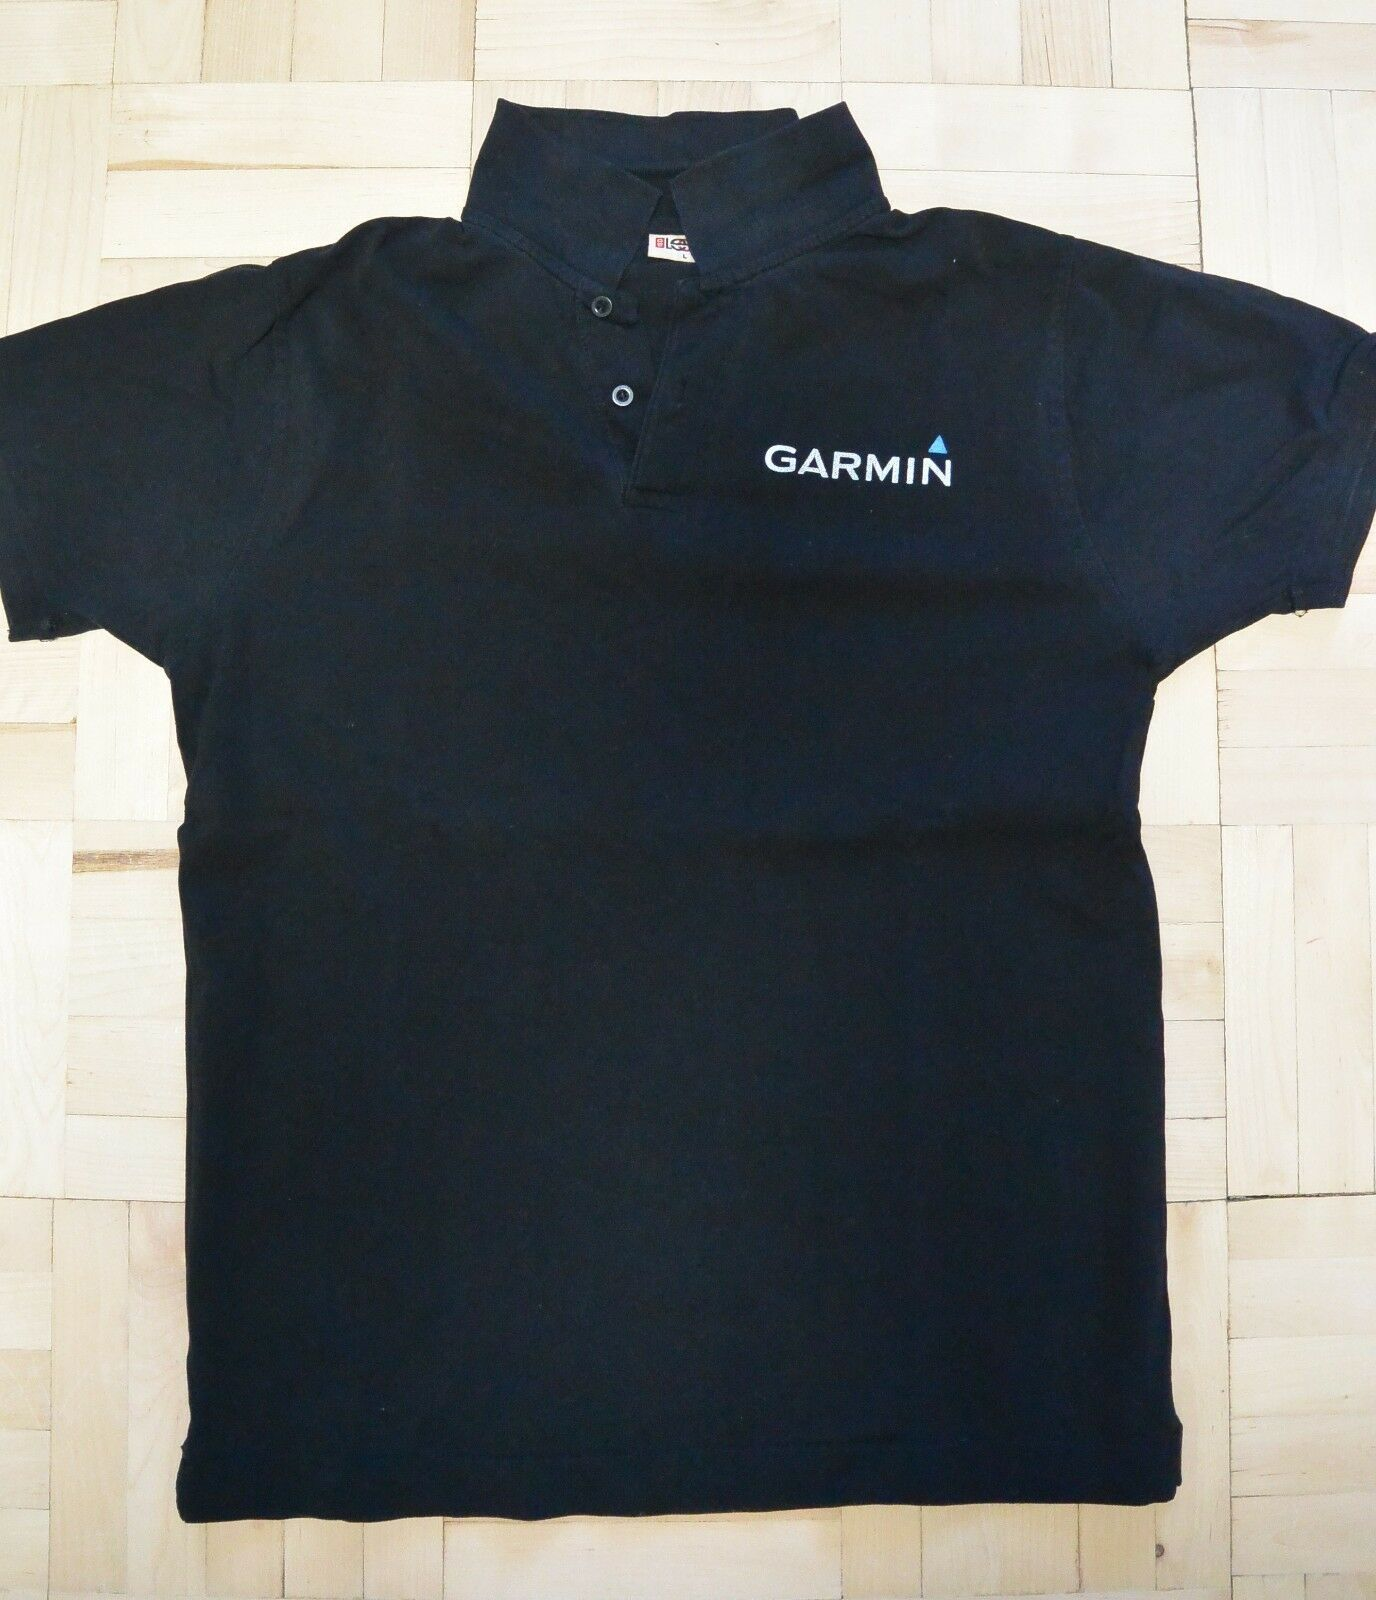 GARMIN T-Shirt Follow The Leader